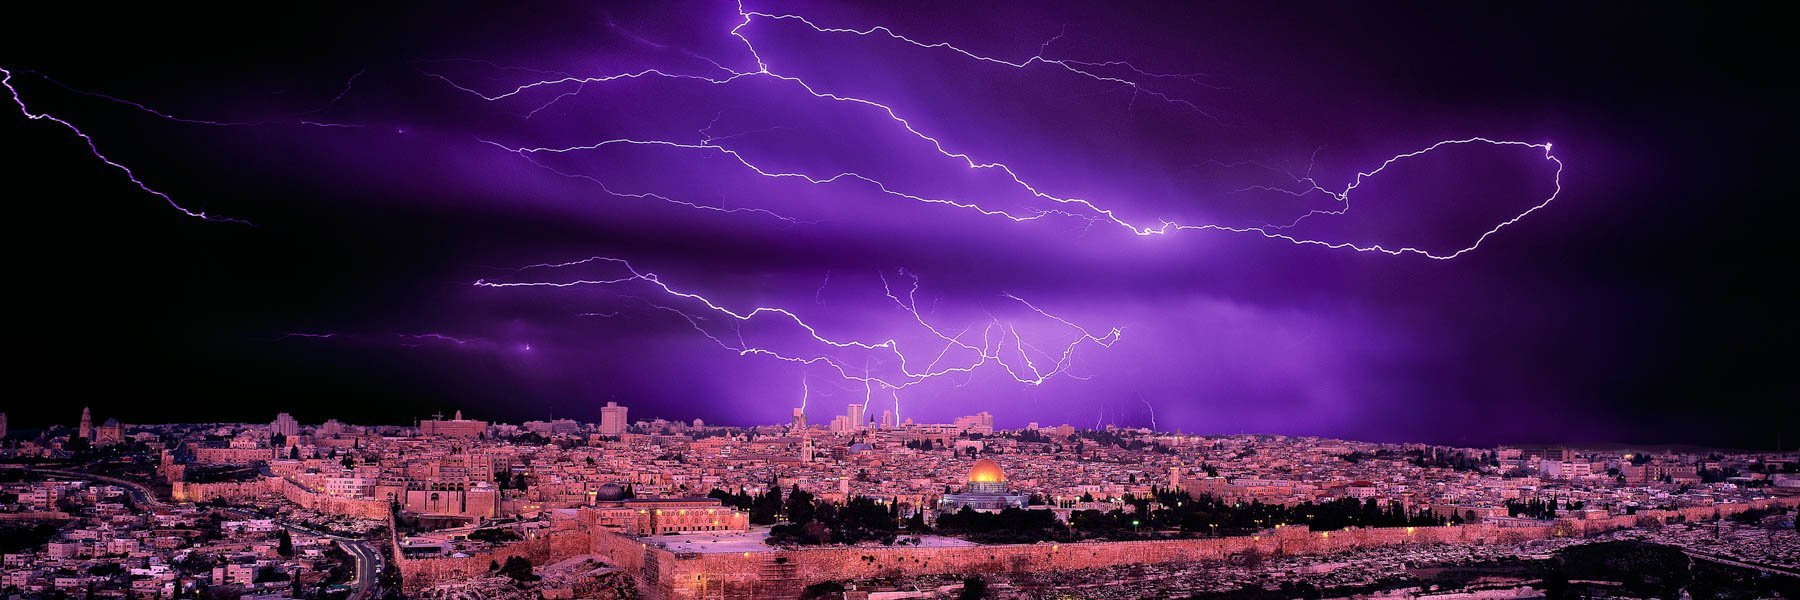 Lighnting flashes over the Holy City of Jerusalem, Israel.